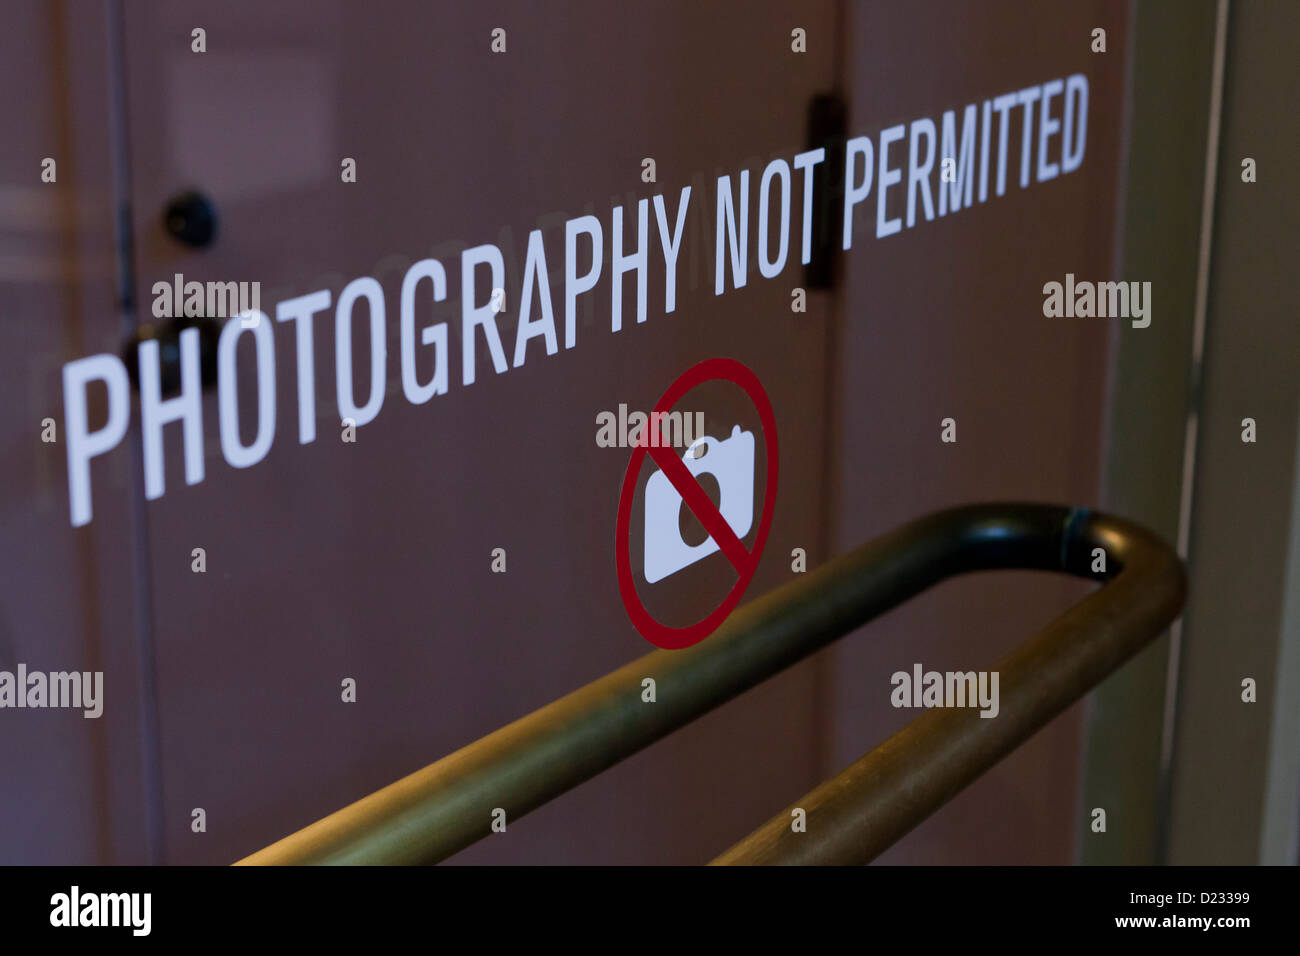 No photography sign - Stock Image